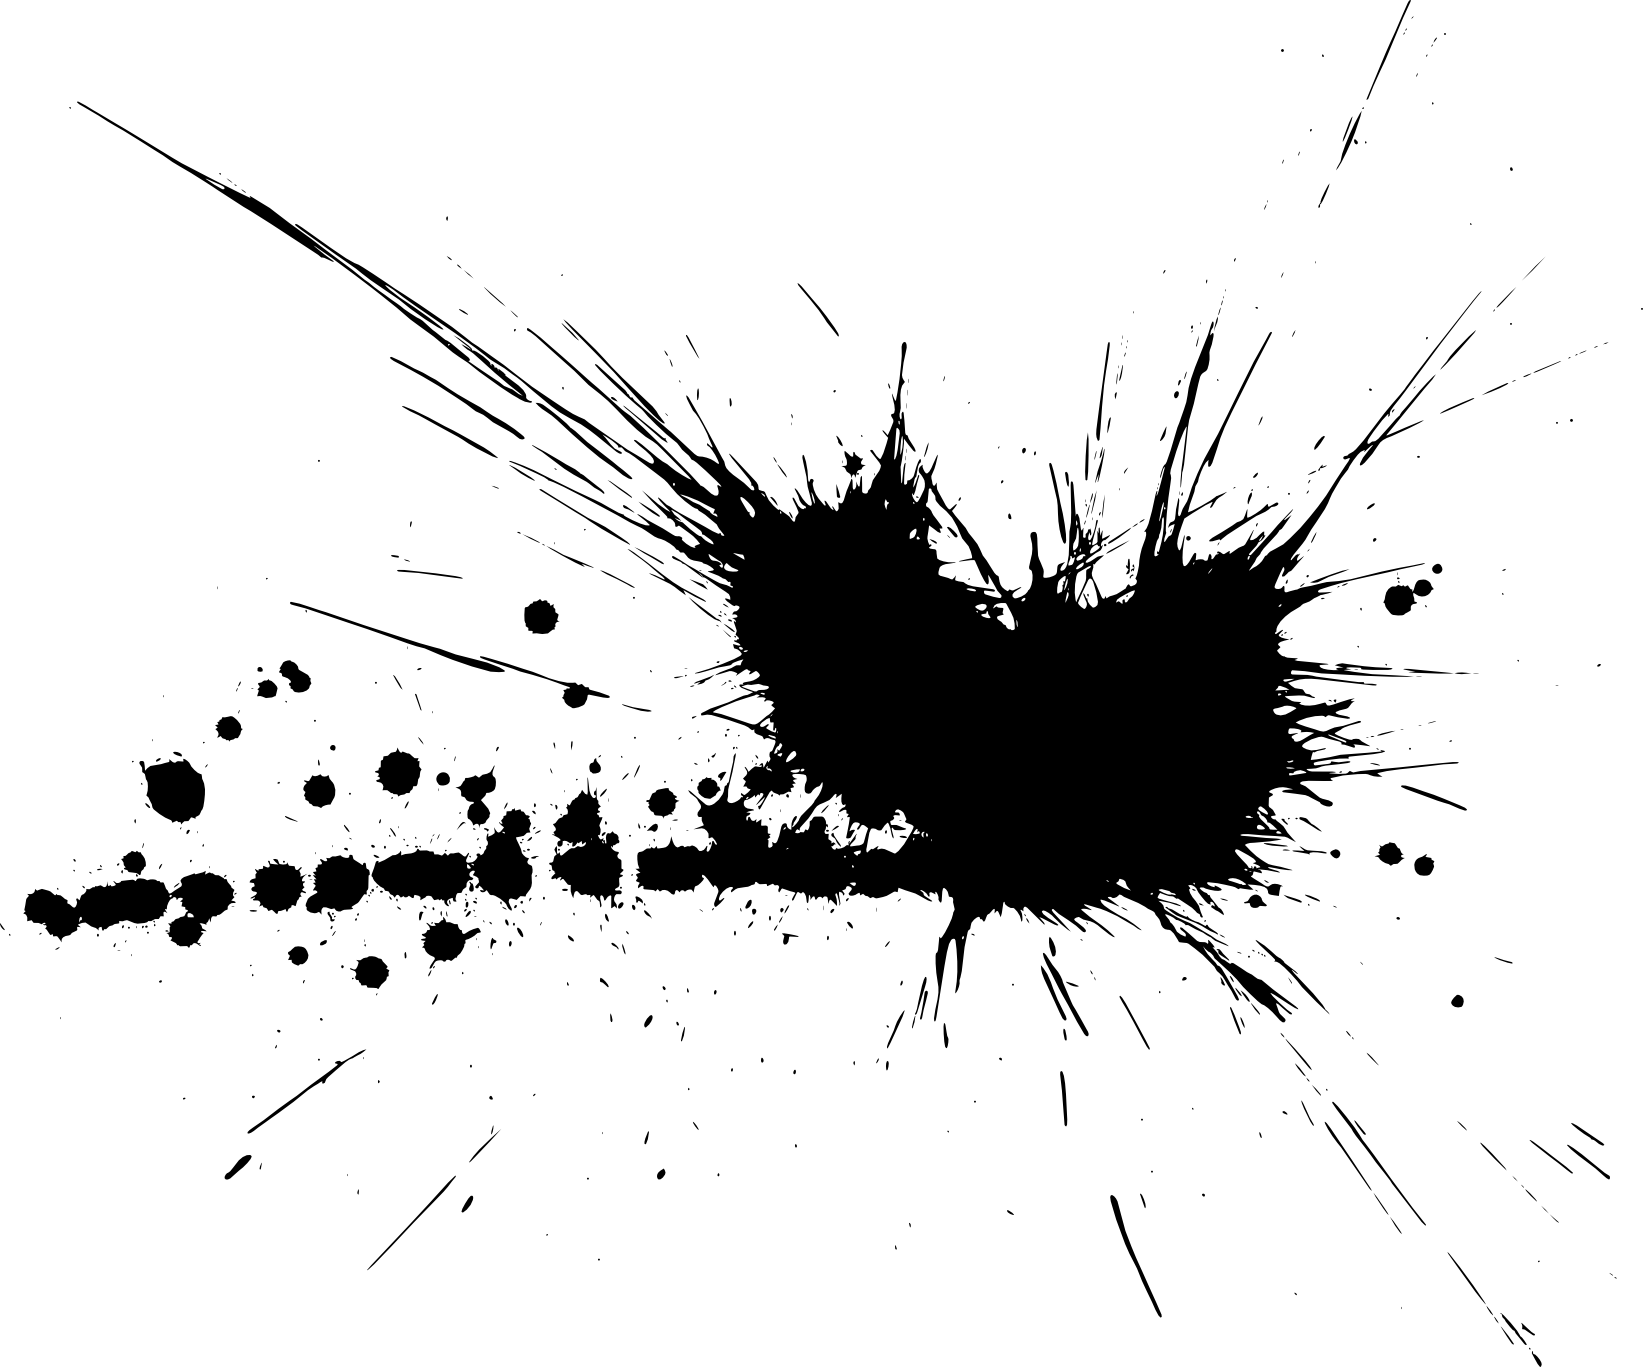 Photoshop brushes free paint splatter